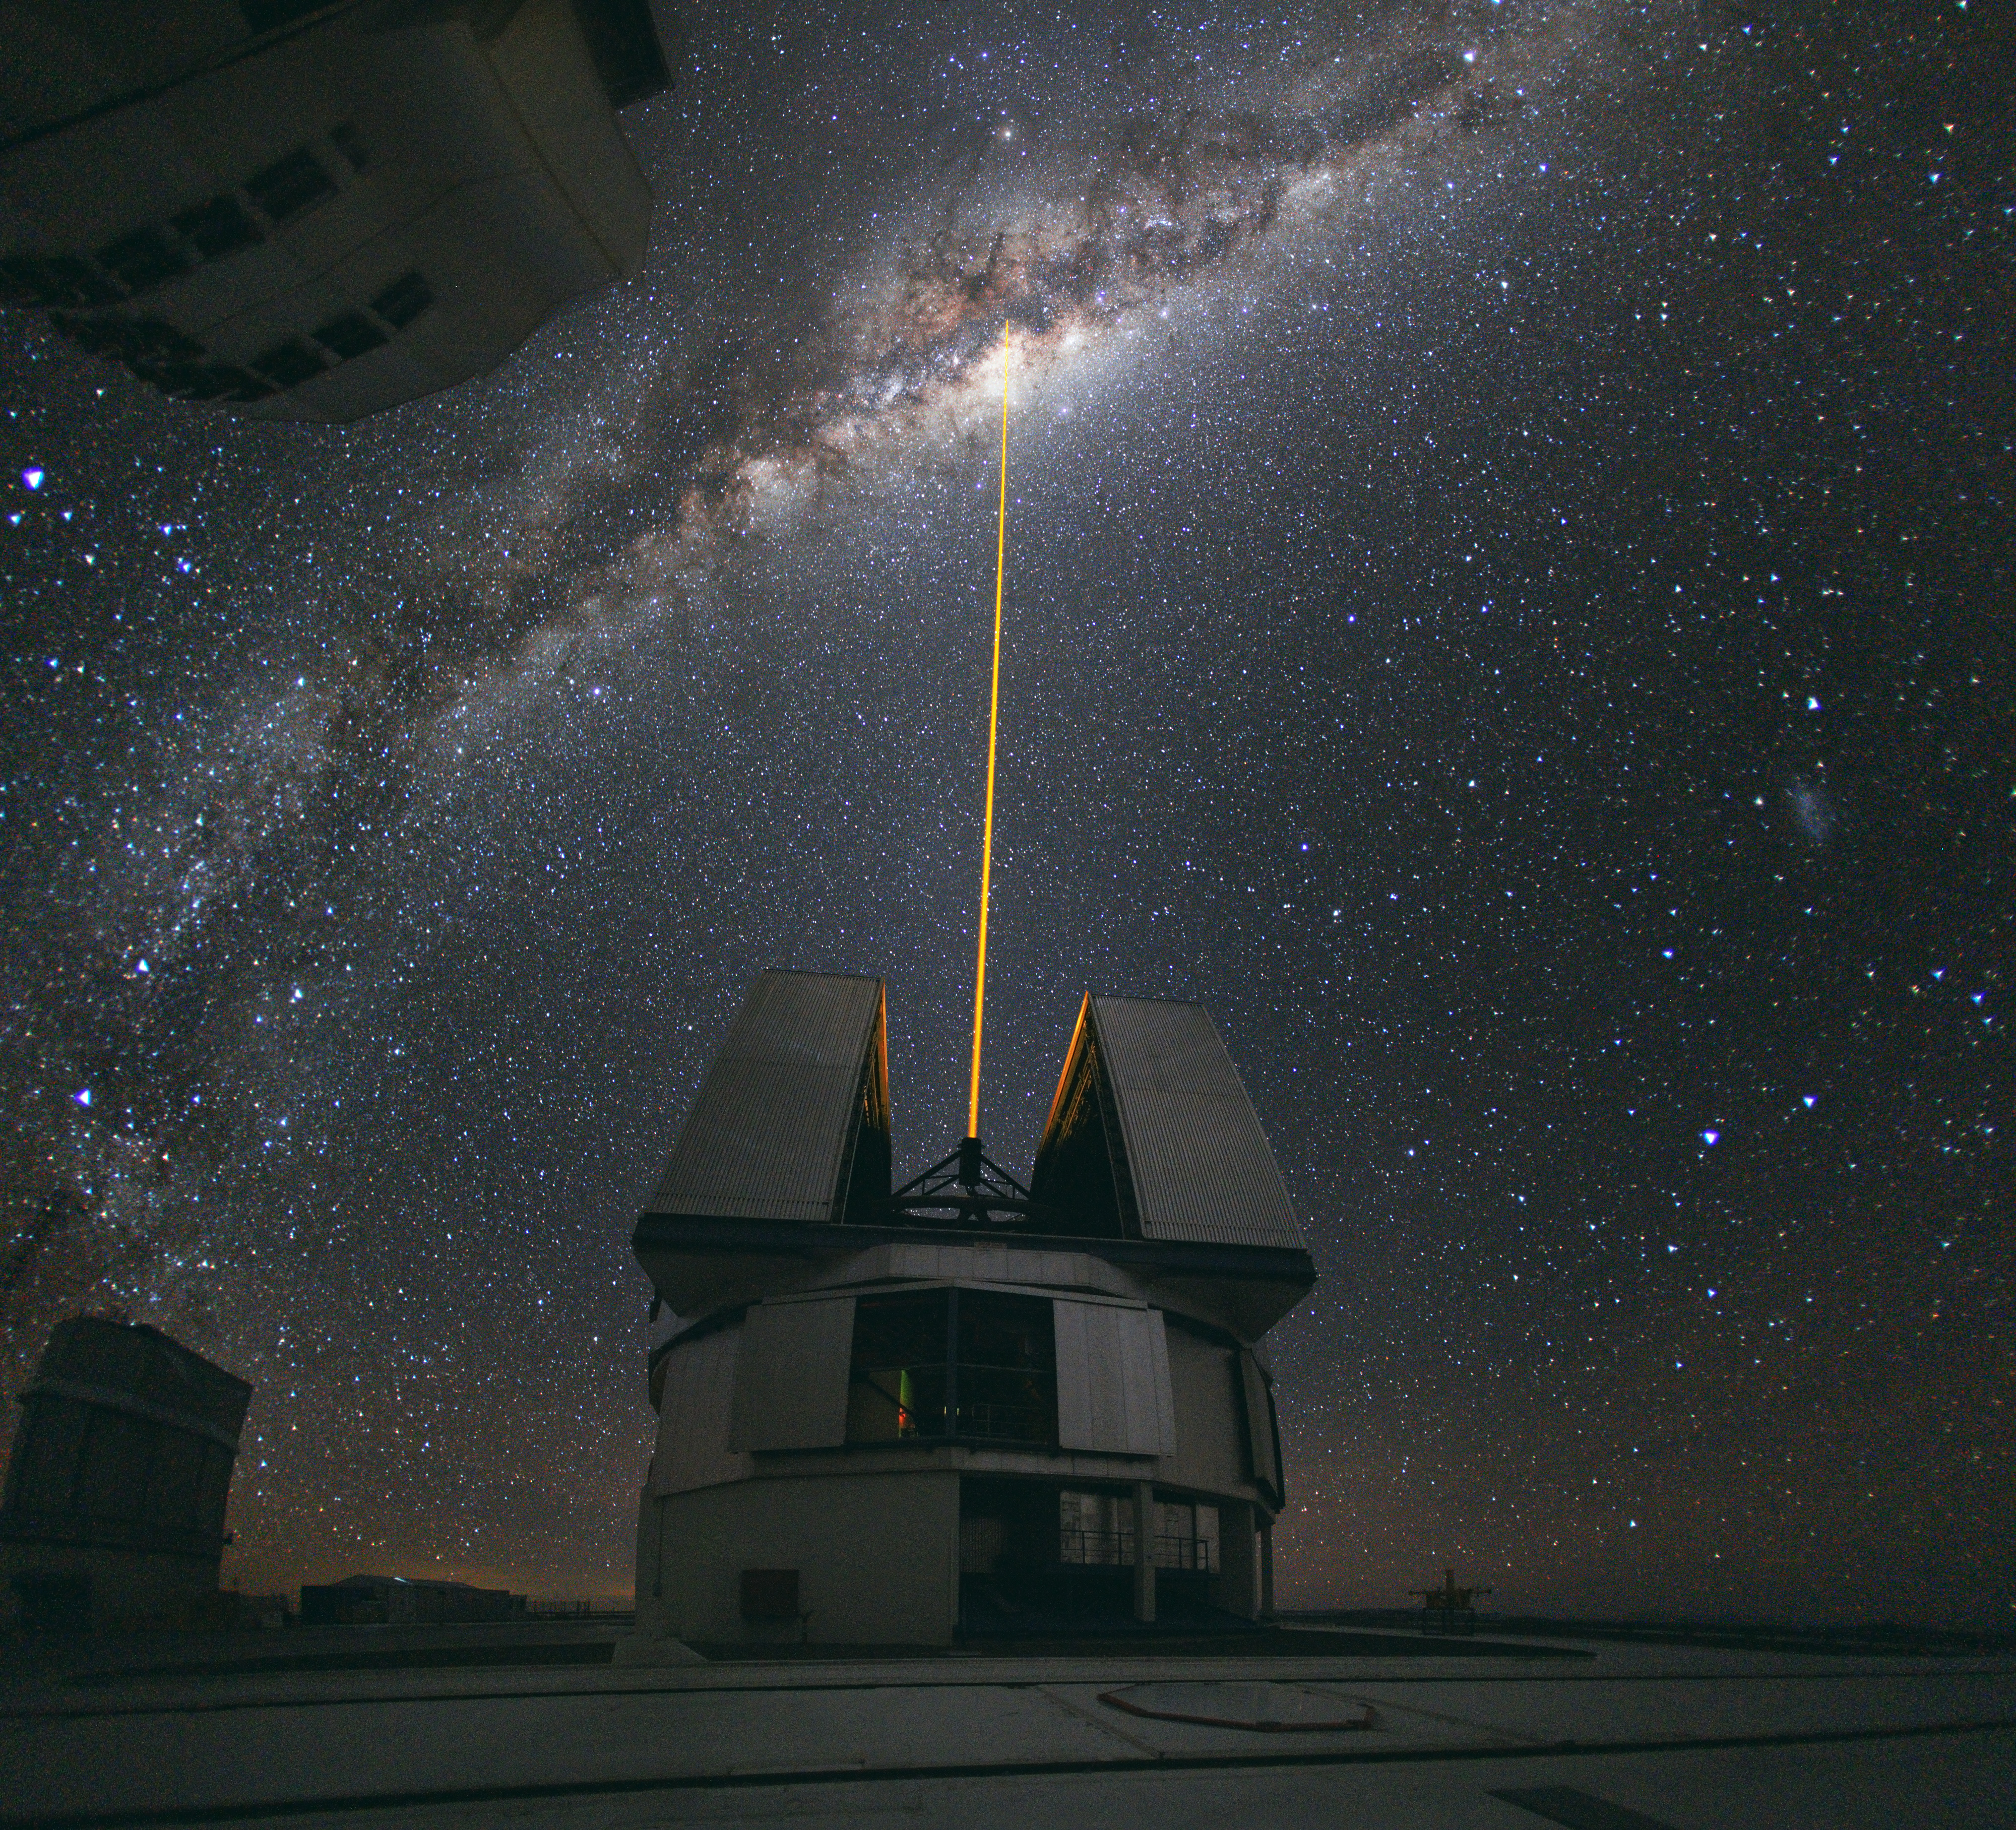 http://upload.wikimedia.org/wikipedia/commons/b/b8/Laser_Towards_Milky_Ways_Centre.jpg